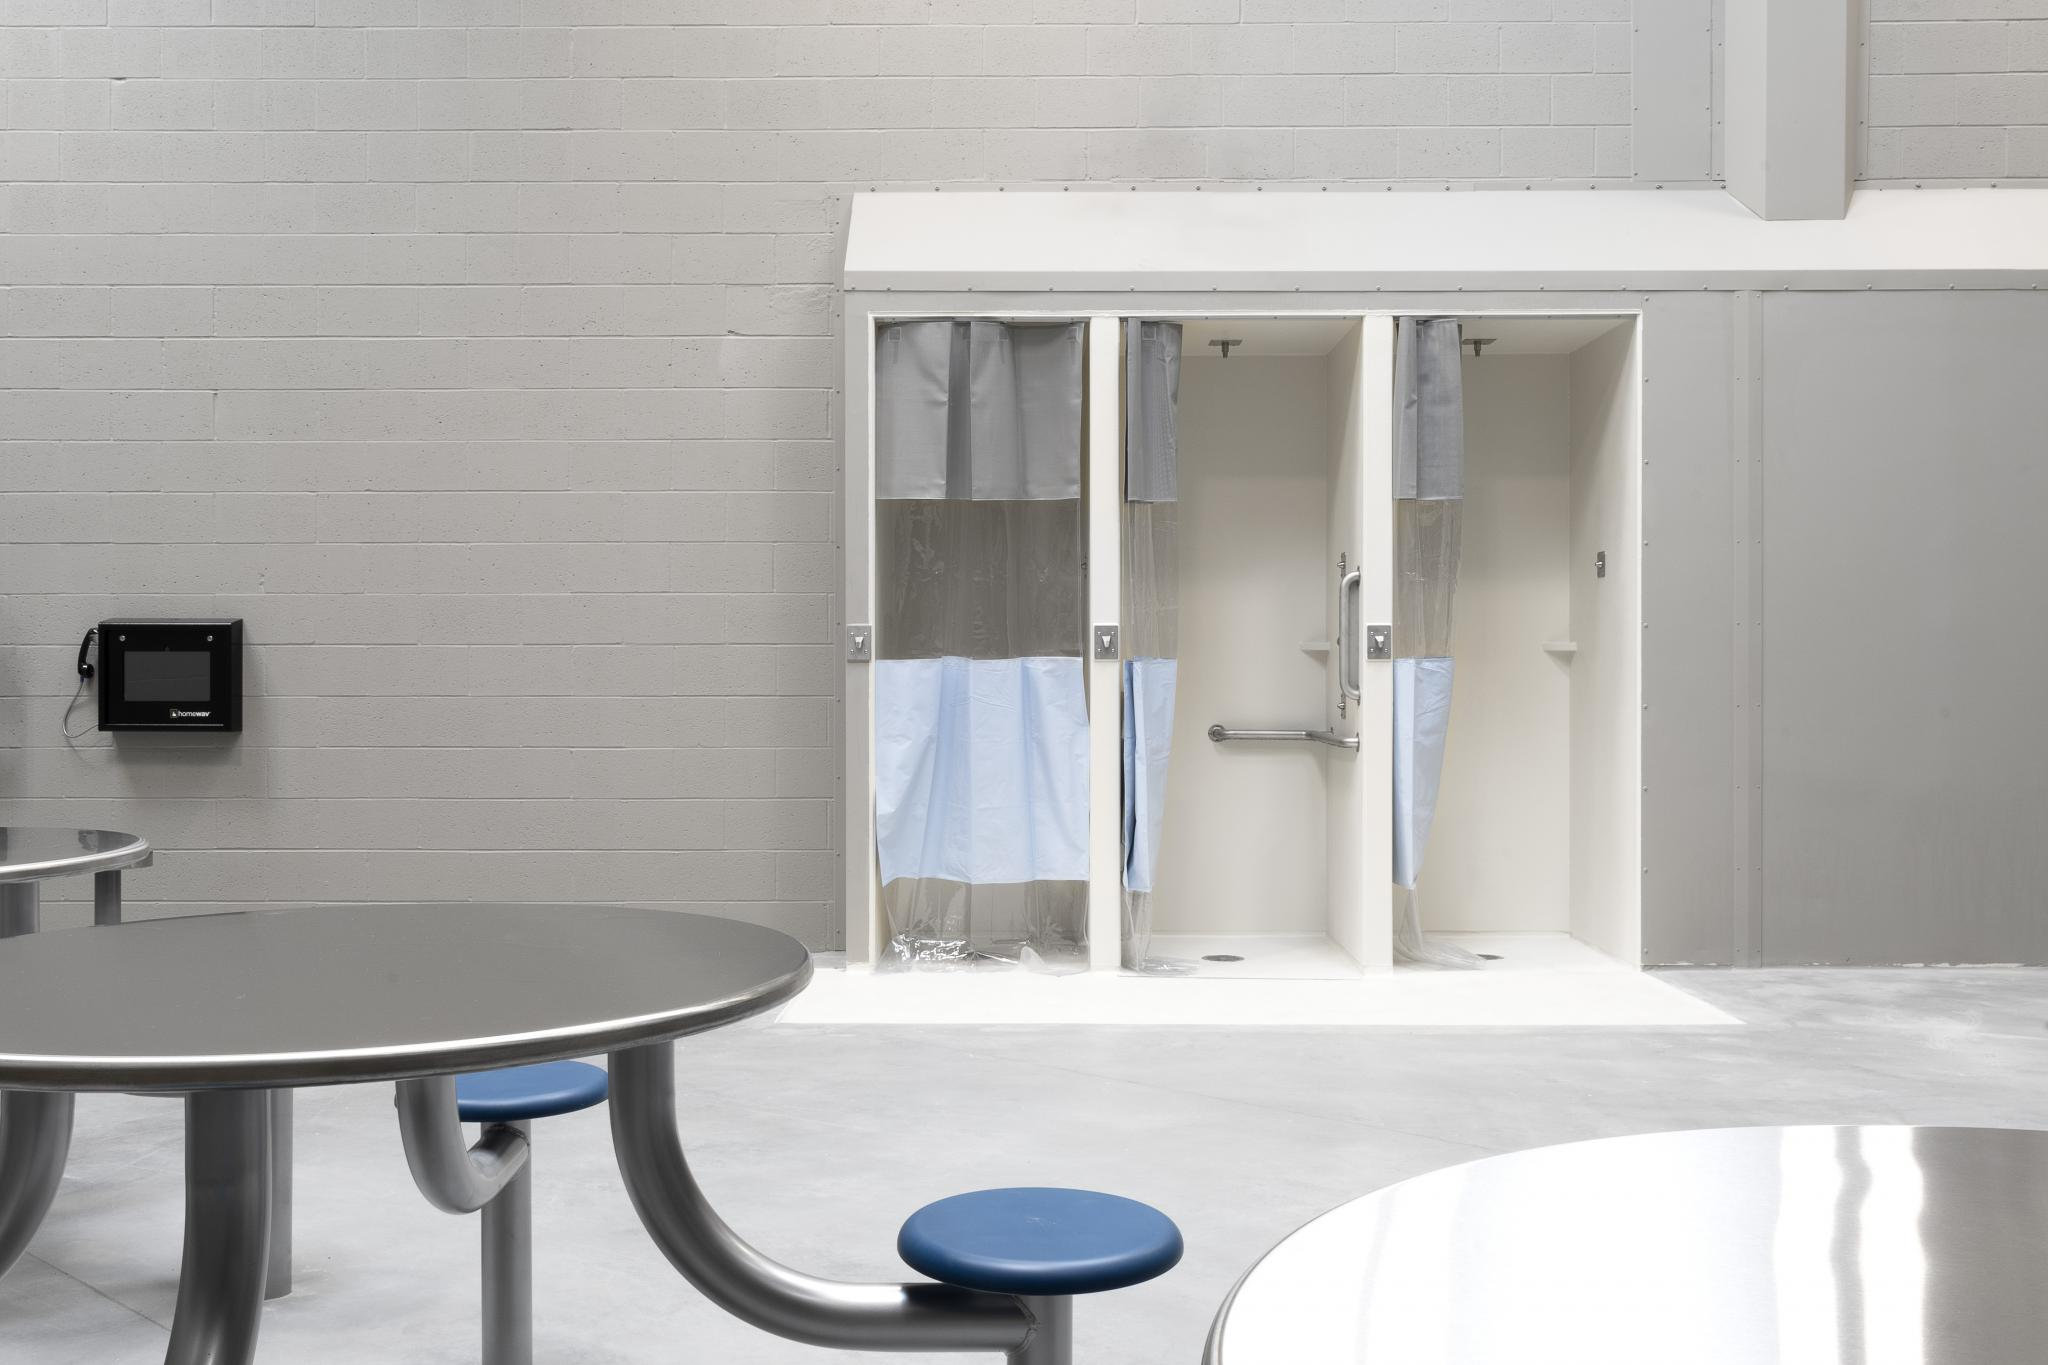 image of a table with chairs and shower stalls